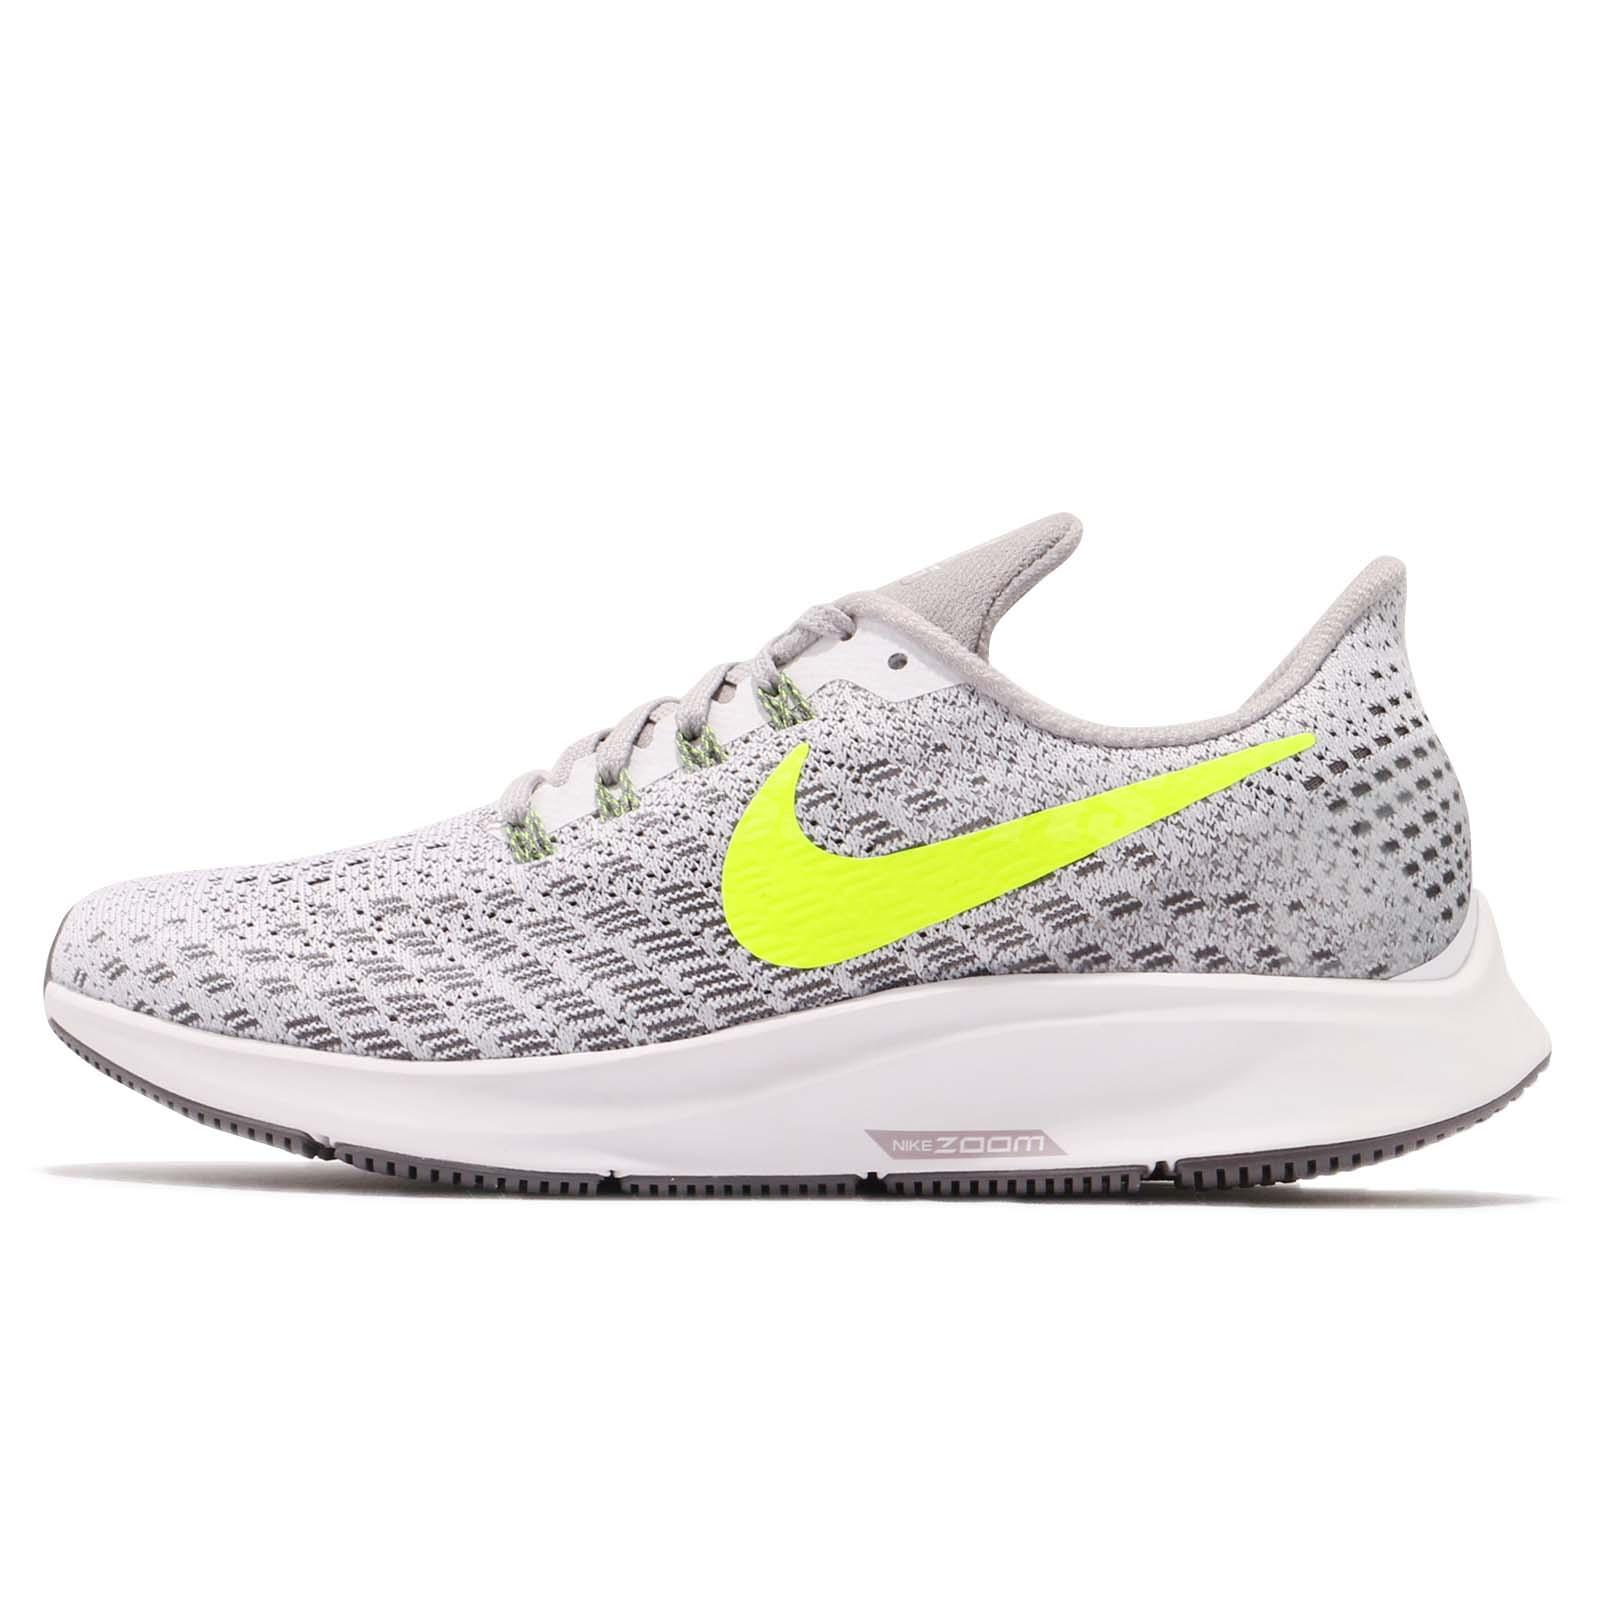 052ec6a25bf4 Nike Wmns Air Zoom Pegasus 35 White Volt Grey Women Running Shoes 942855-101